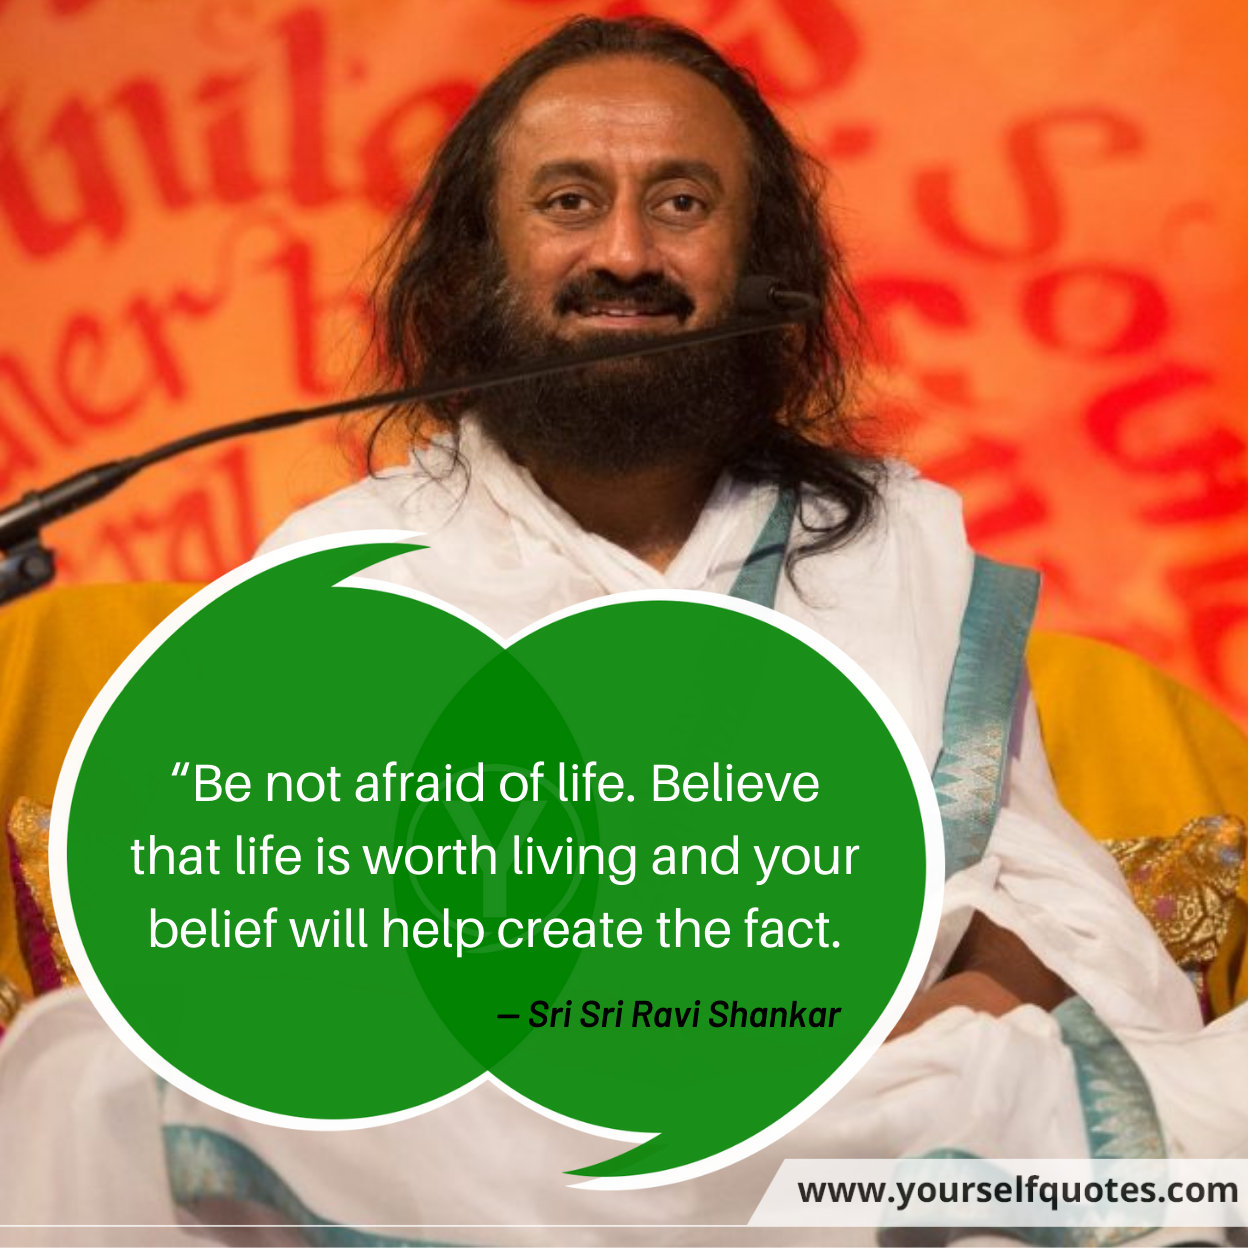 Art of Living Quote By Sri Sri Ravi Shankar